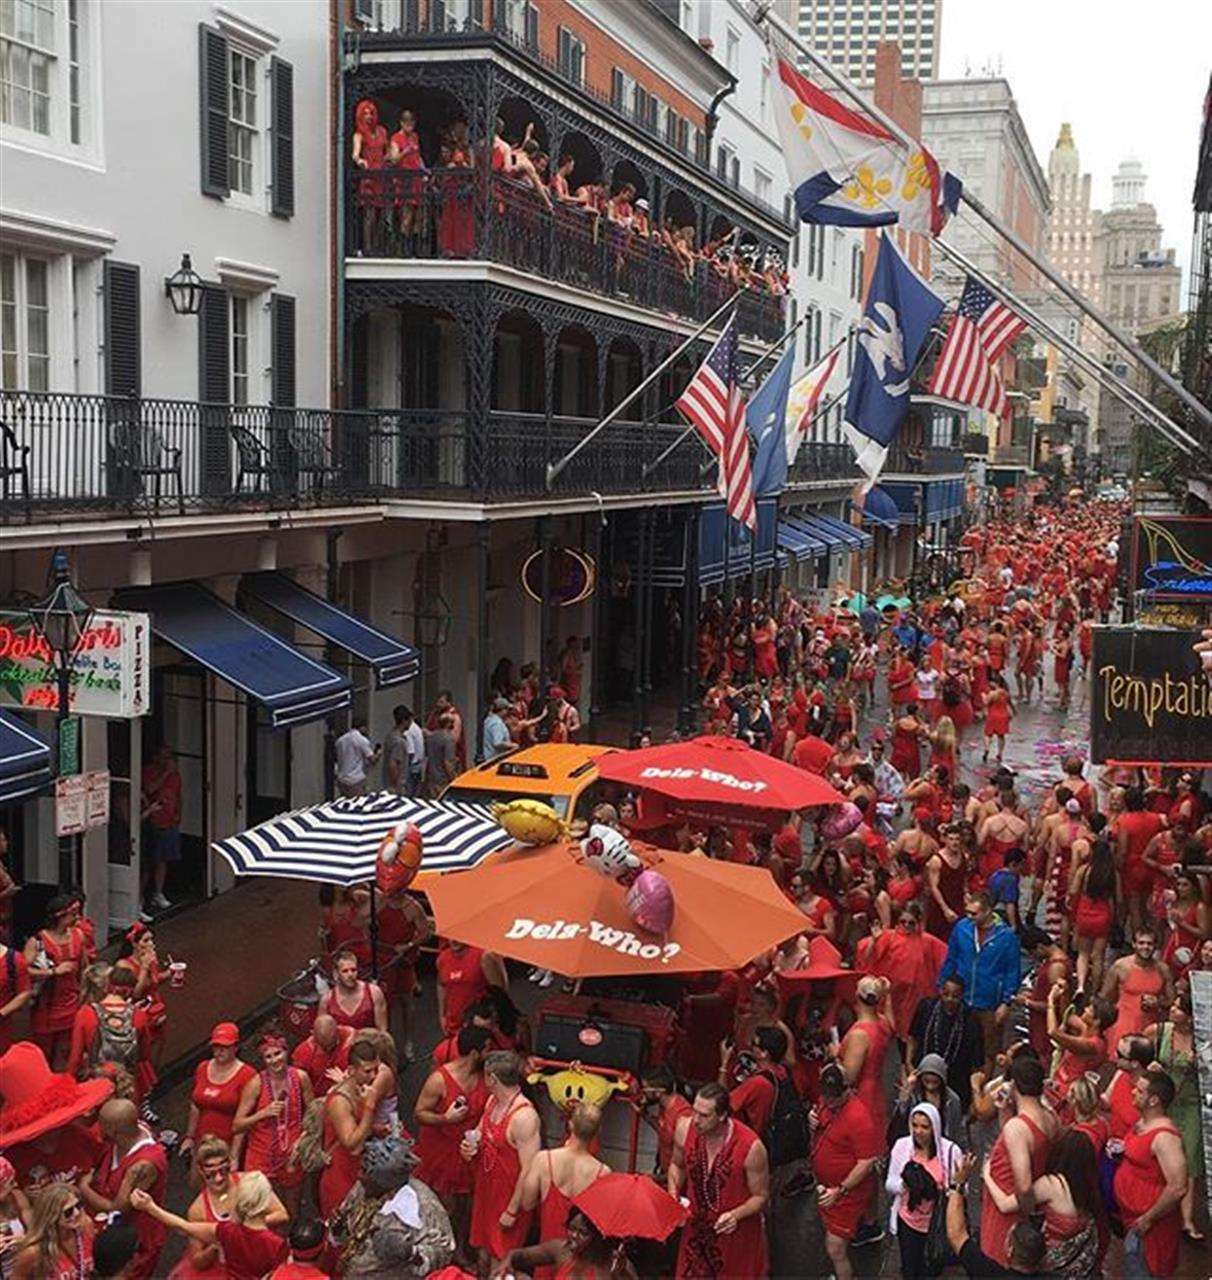 Rain or shine, one of the best days of the year in #NewOrleans  #RedDressRun #BeATouristNola